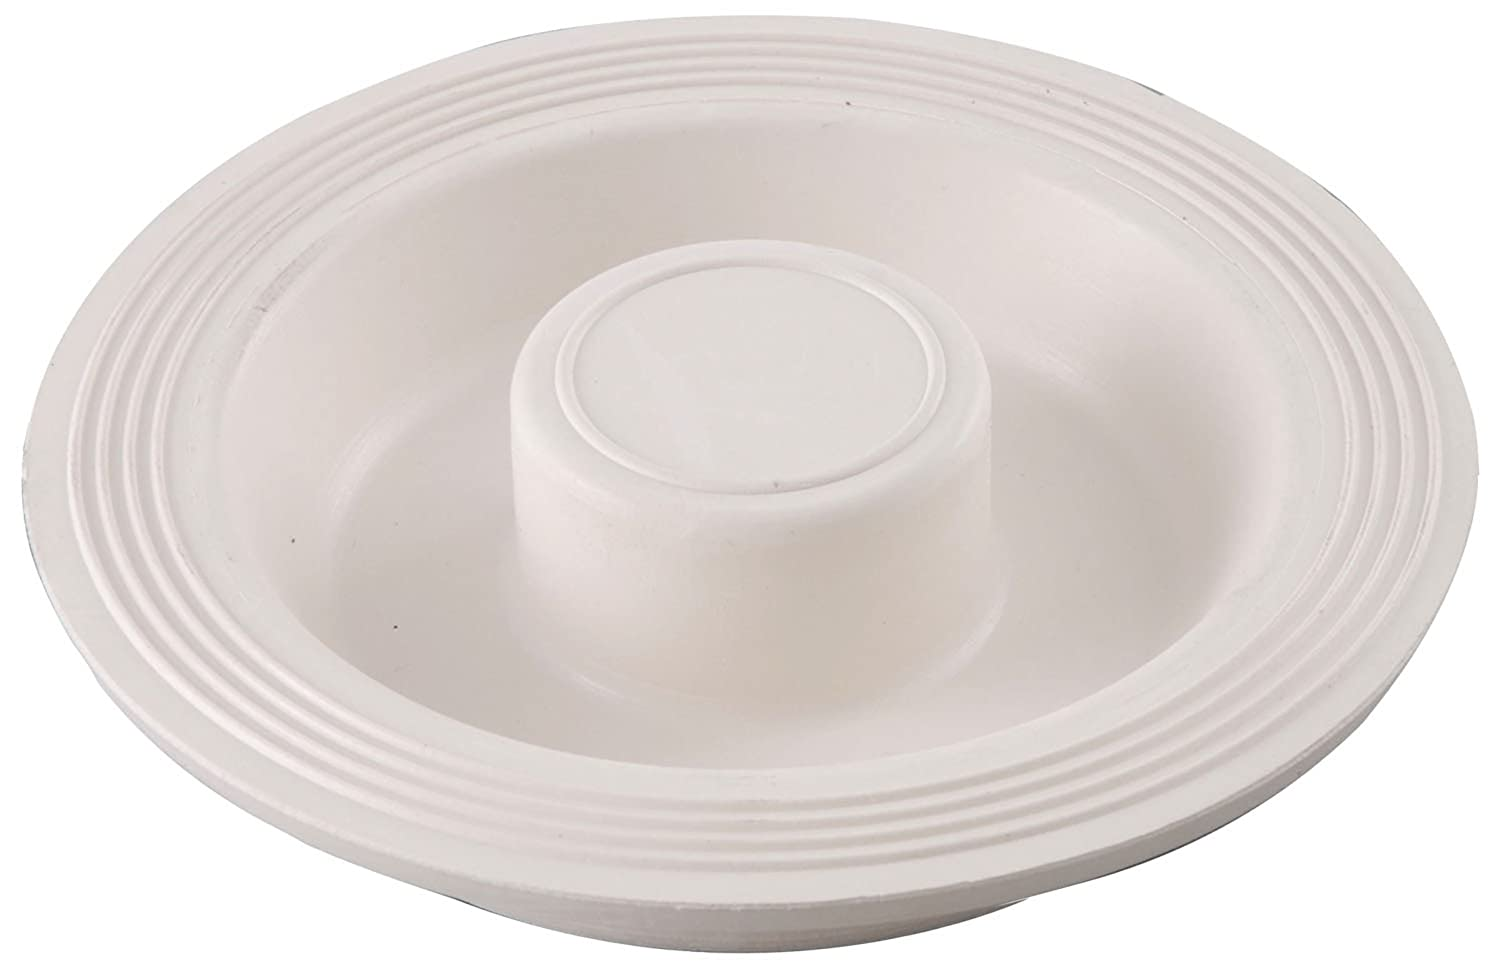 LDR Industries 501 5100 Garbage Disposal Stopper, White